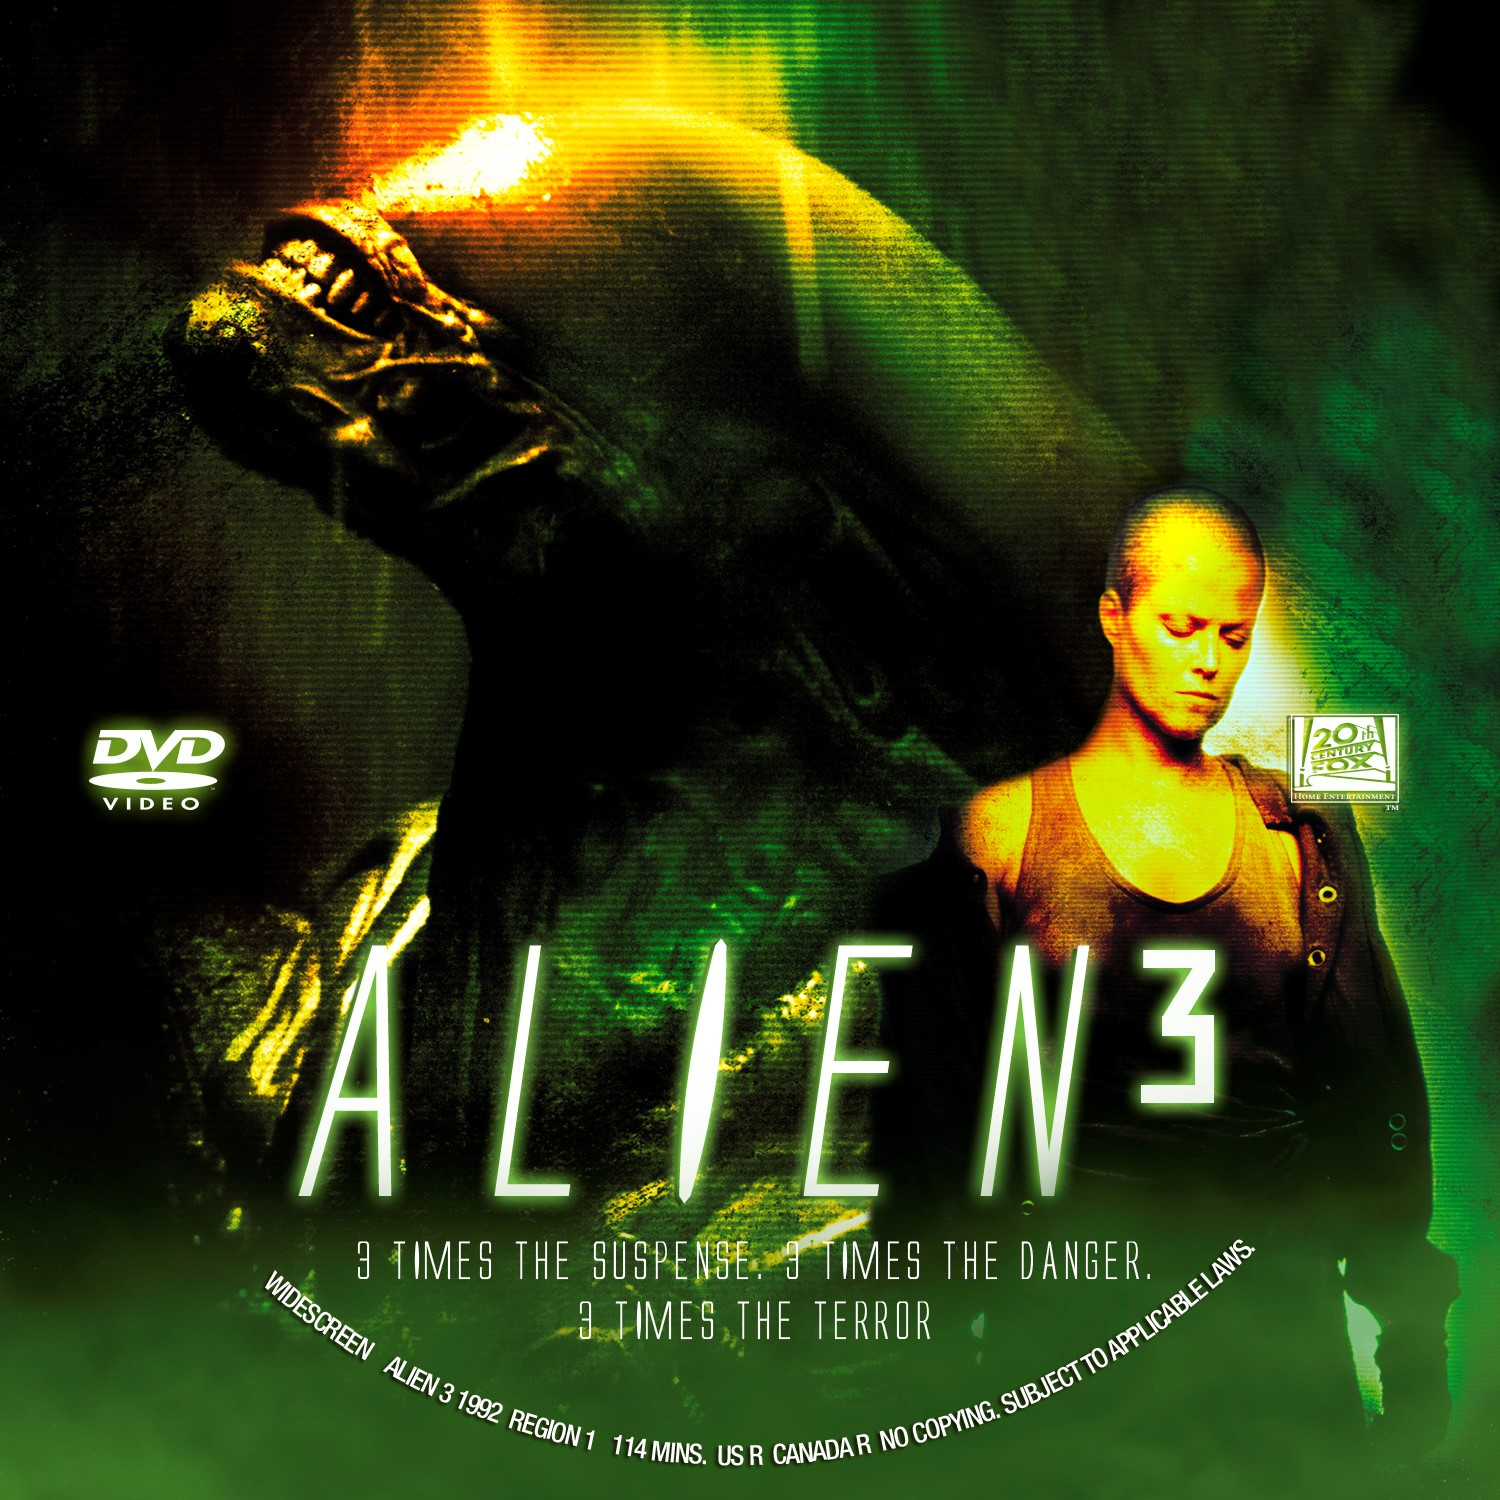 Alien 3 Movie: Free DVD, Bluray Covers